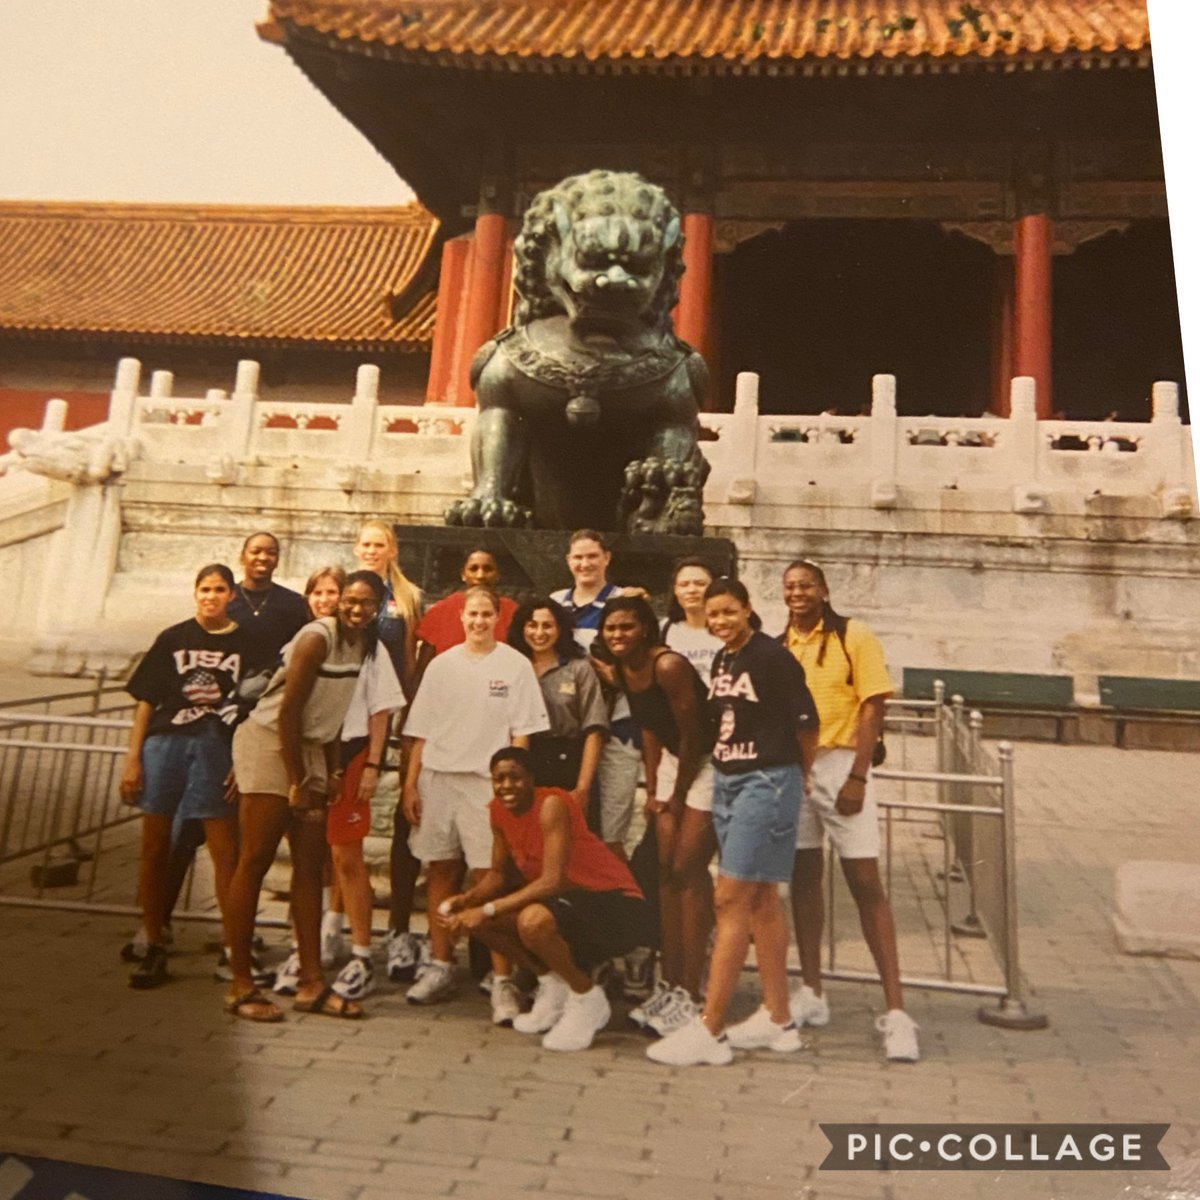 TBT 1998 USA 🇺🇸 Jones Cup Team Champions #GreatWallOfChina #Taiwan #Japan @BeckyHammon @Catchin24 @SRLay_21 @Coach_E_B @